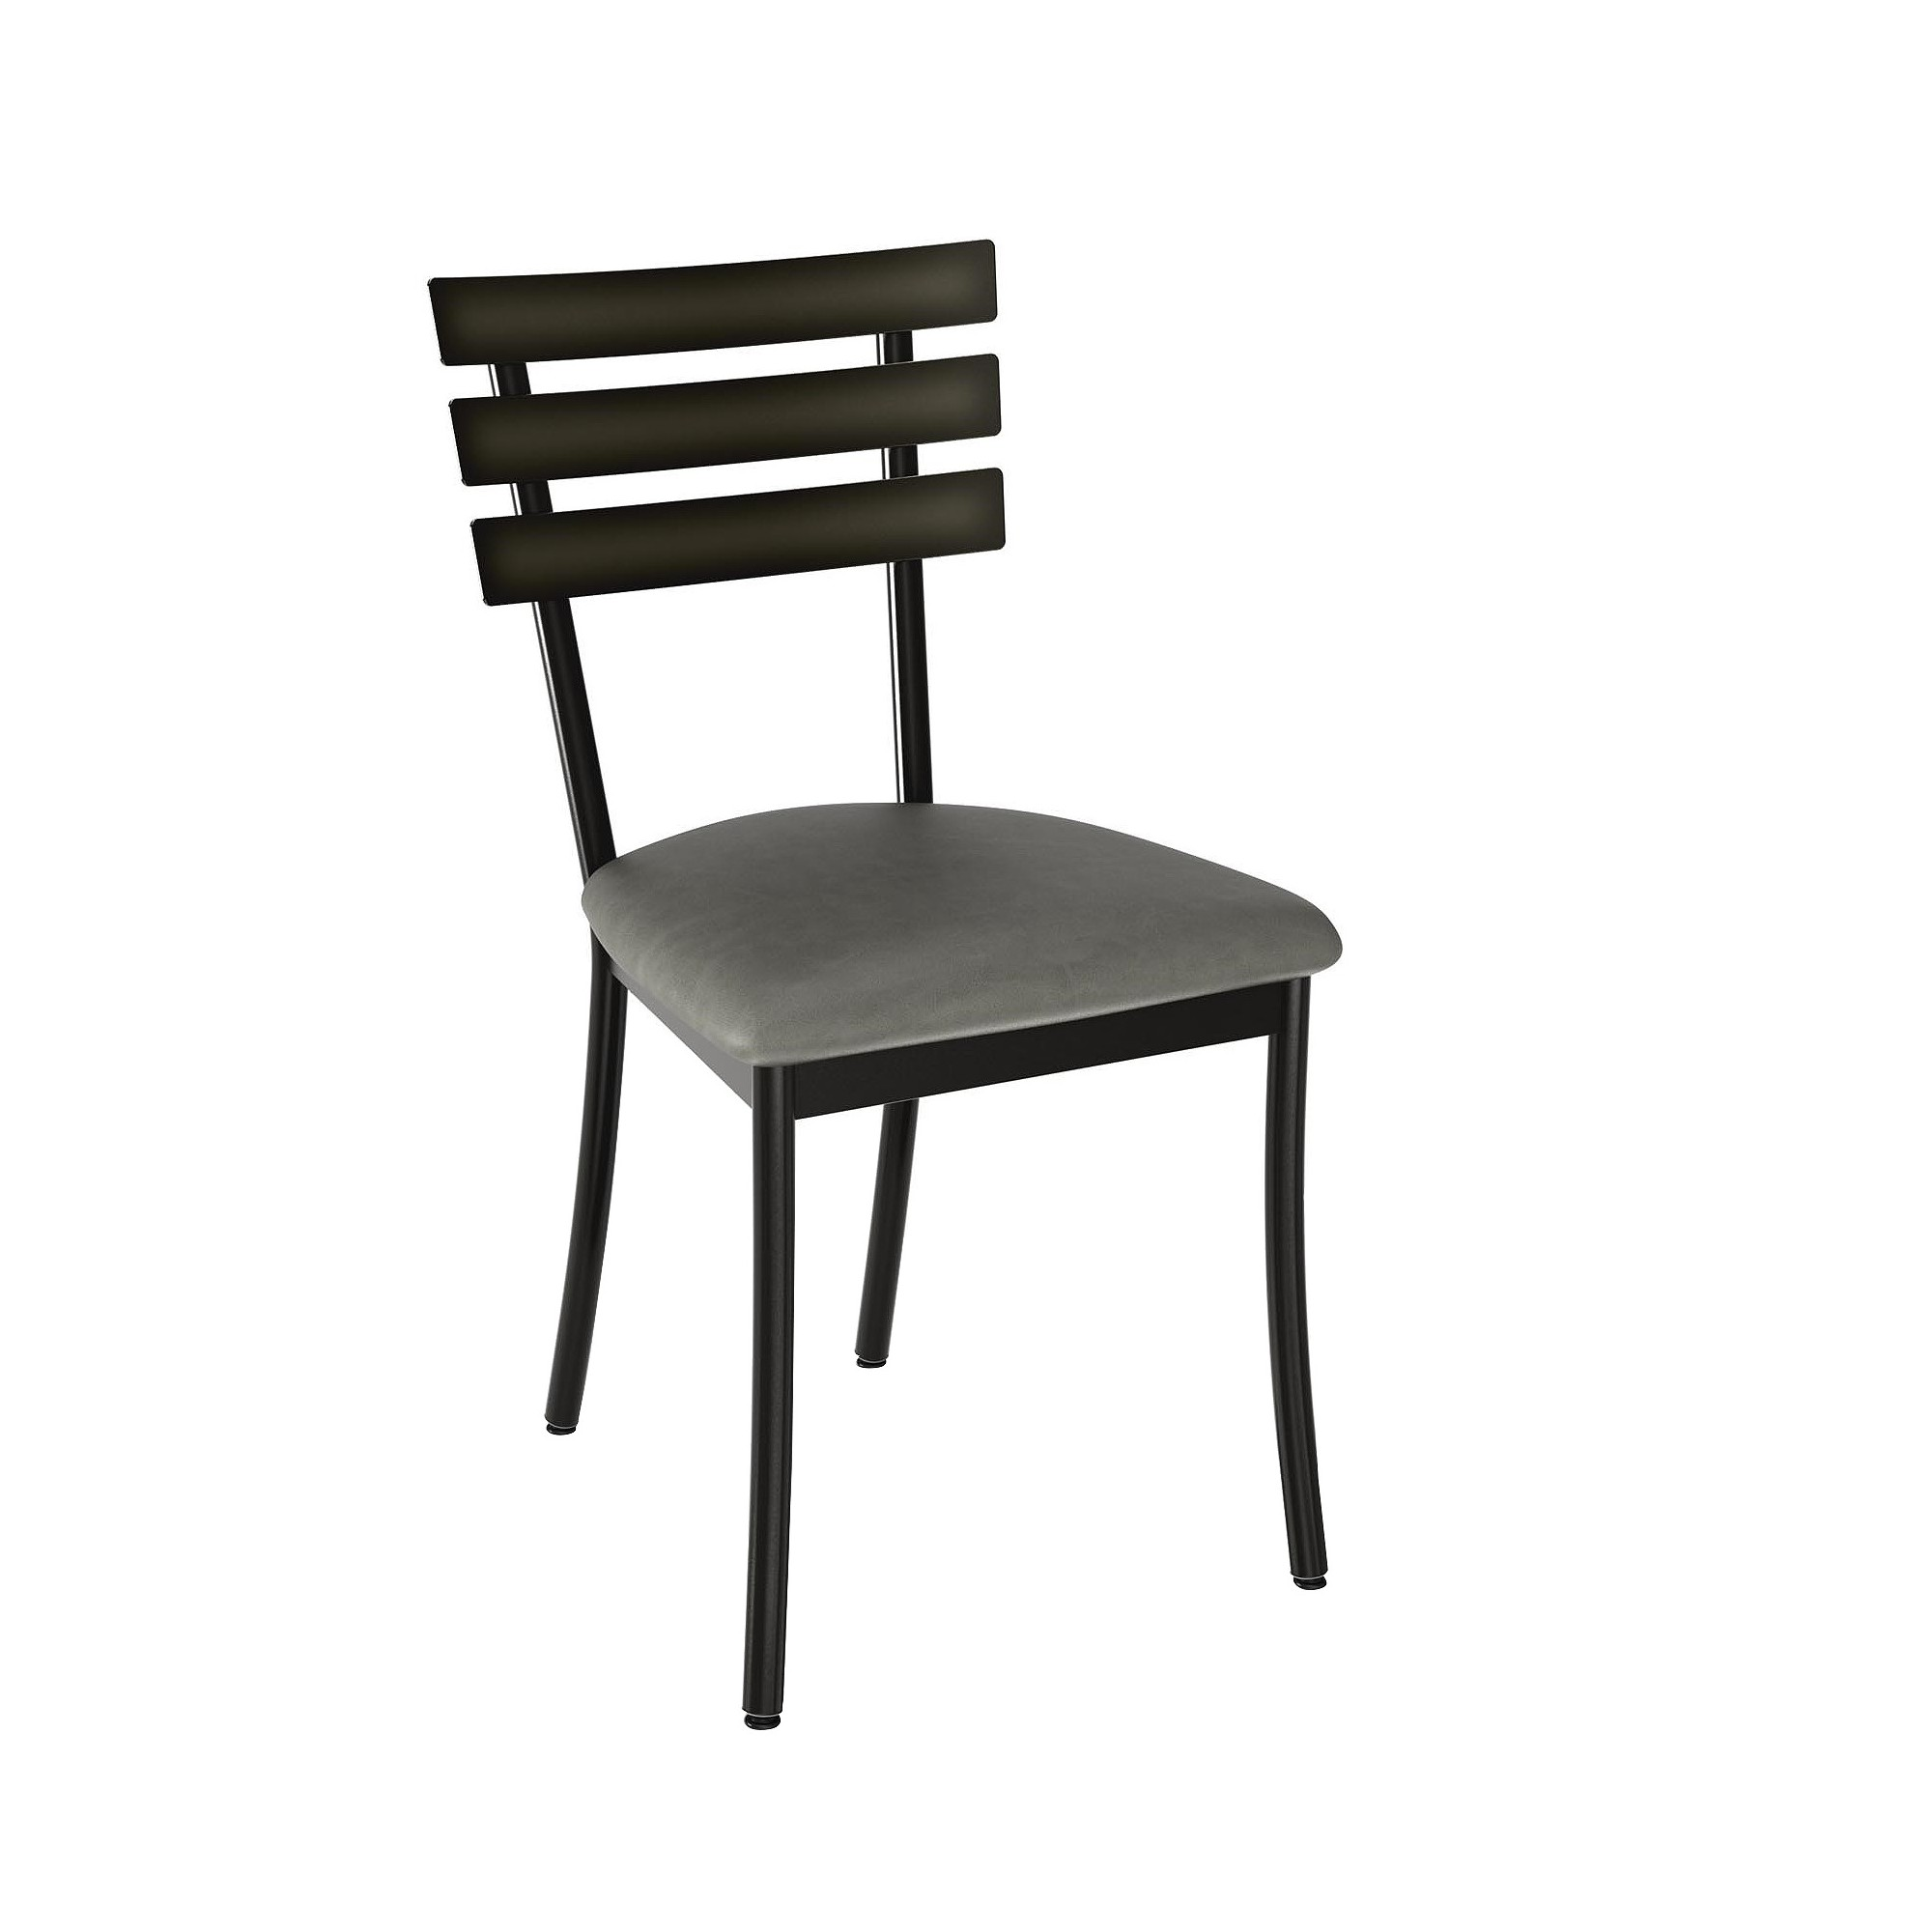 Excellent Unity Metal Dining Chair Gunmetal And Gray 2 In Set Amisco Bralicious Painted Fabric Chair Ideas Braliciousco